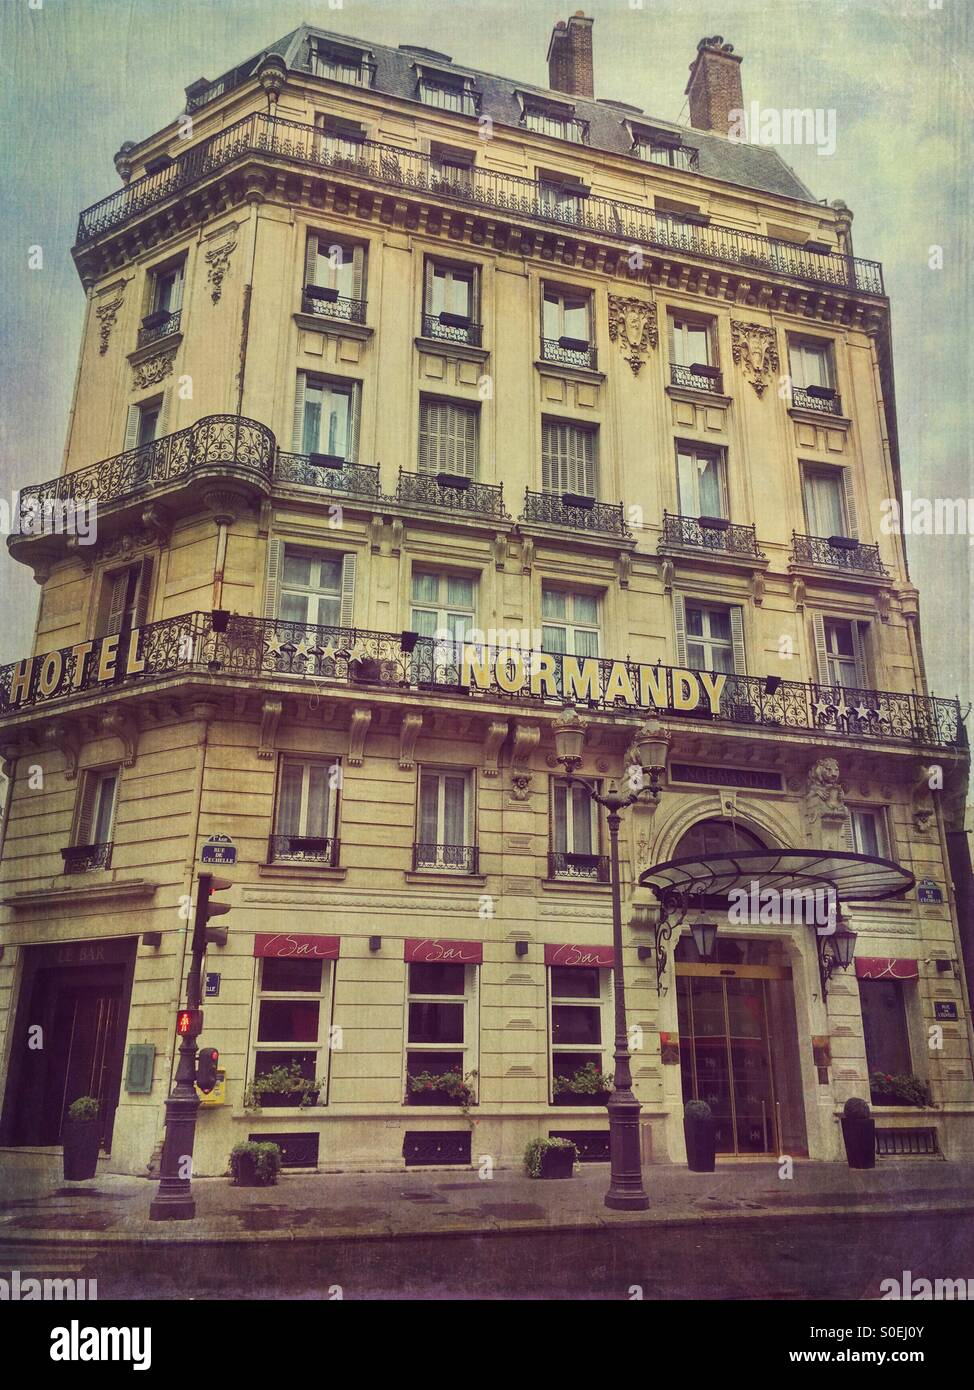 View of Hotel Normandy, located in the historic centre of Paris, France. Antique, retro look with vintage paper Stock Photo